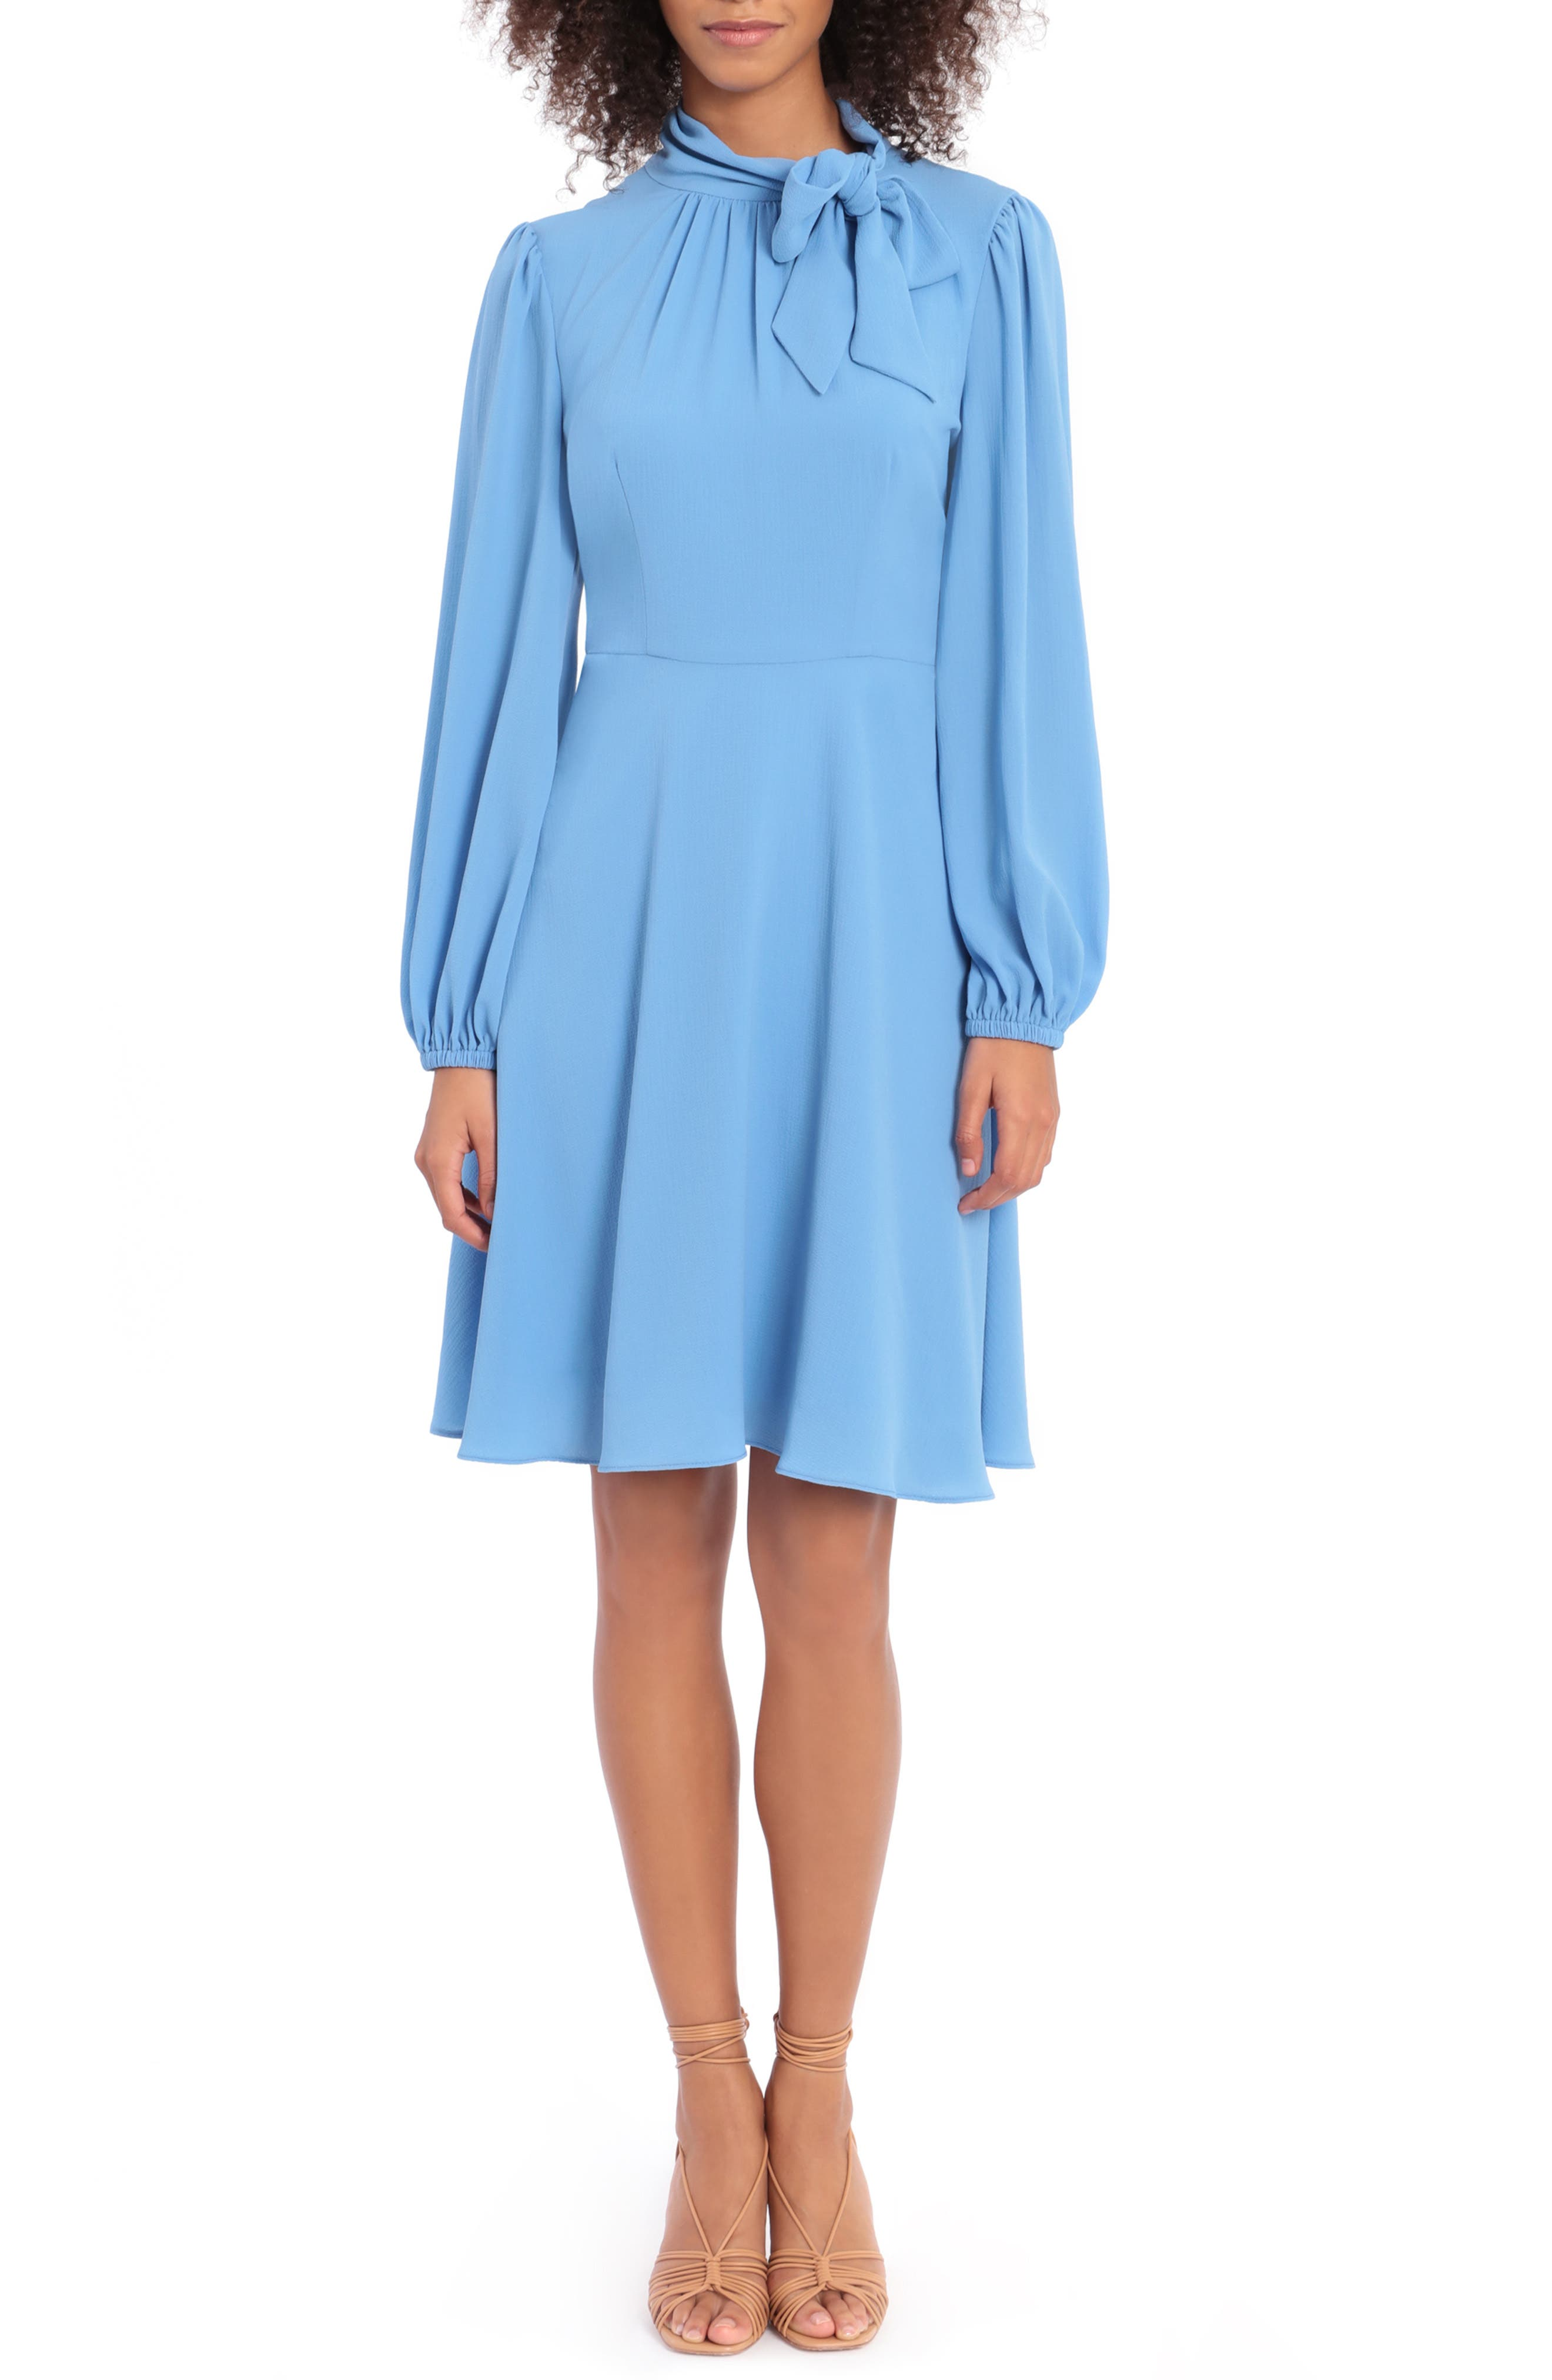 Catalina Tie Neck Long Sleeve Fit & Flare Crepe Dress